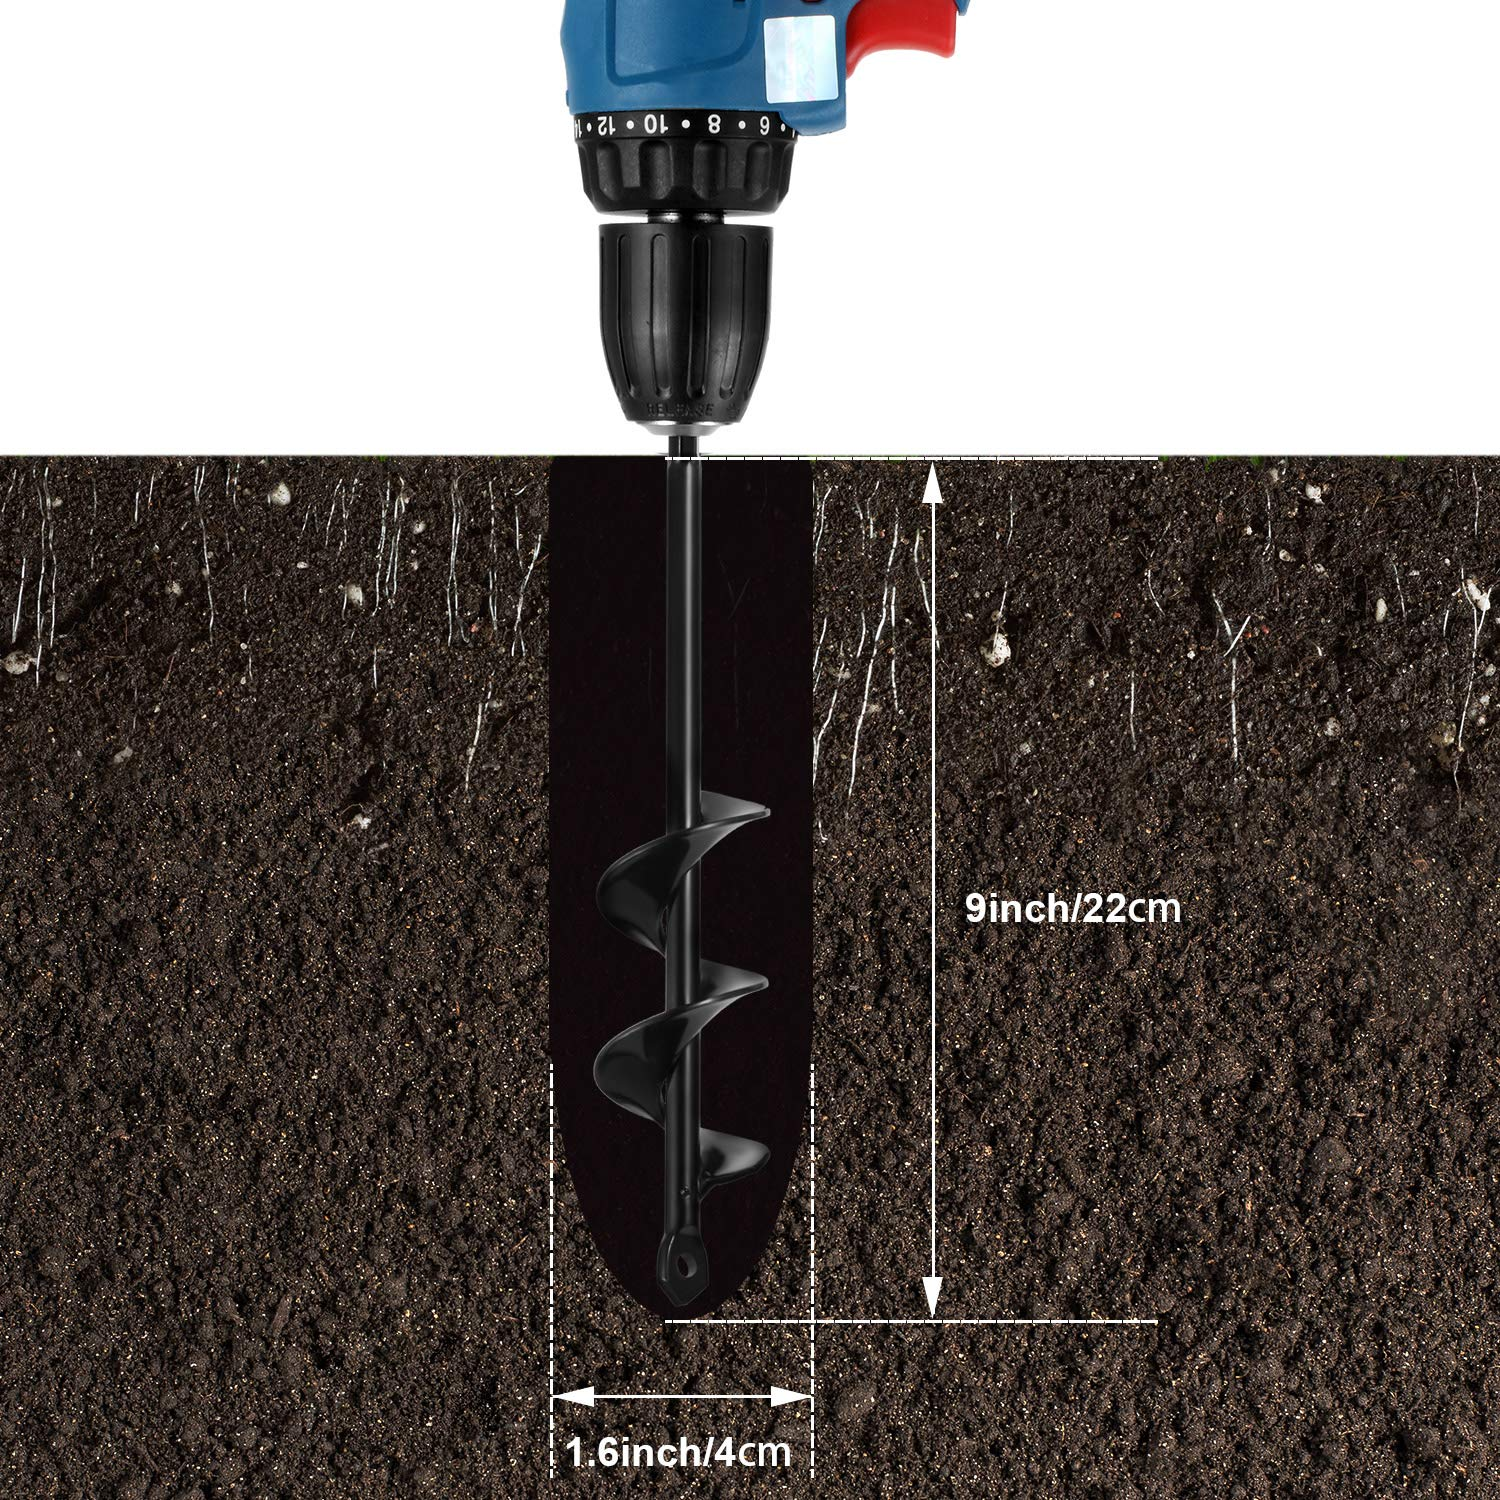 Auger Drill Bit for Planting Spiral Hole Drill Planter 1.6 x 9 Inch Hex Shaft Auger Post or Umbrella Hole Digger Auger Garden Spiral Drill Bits for Earth Garden Plant Flower Bulb